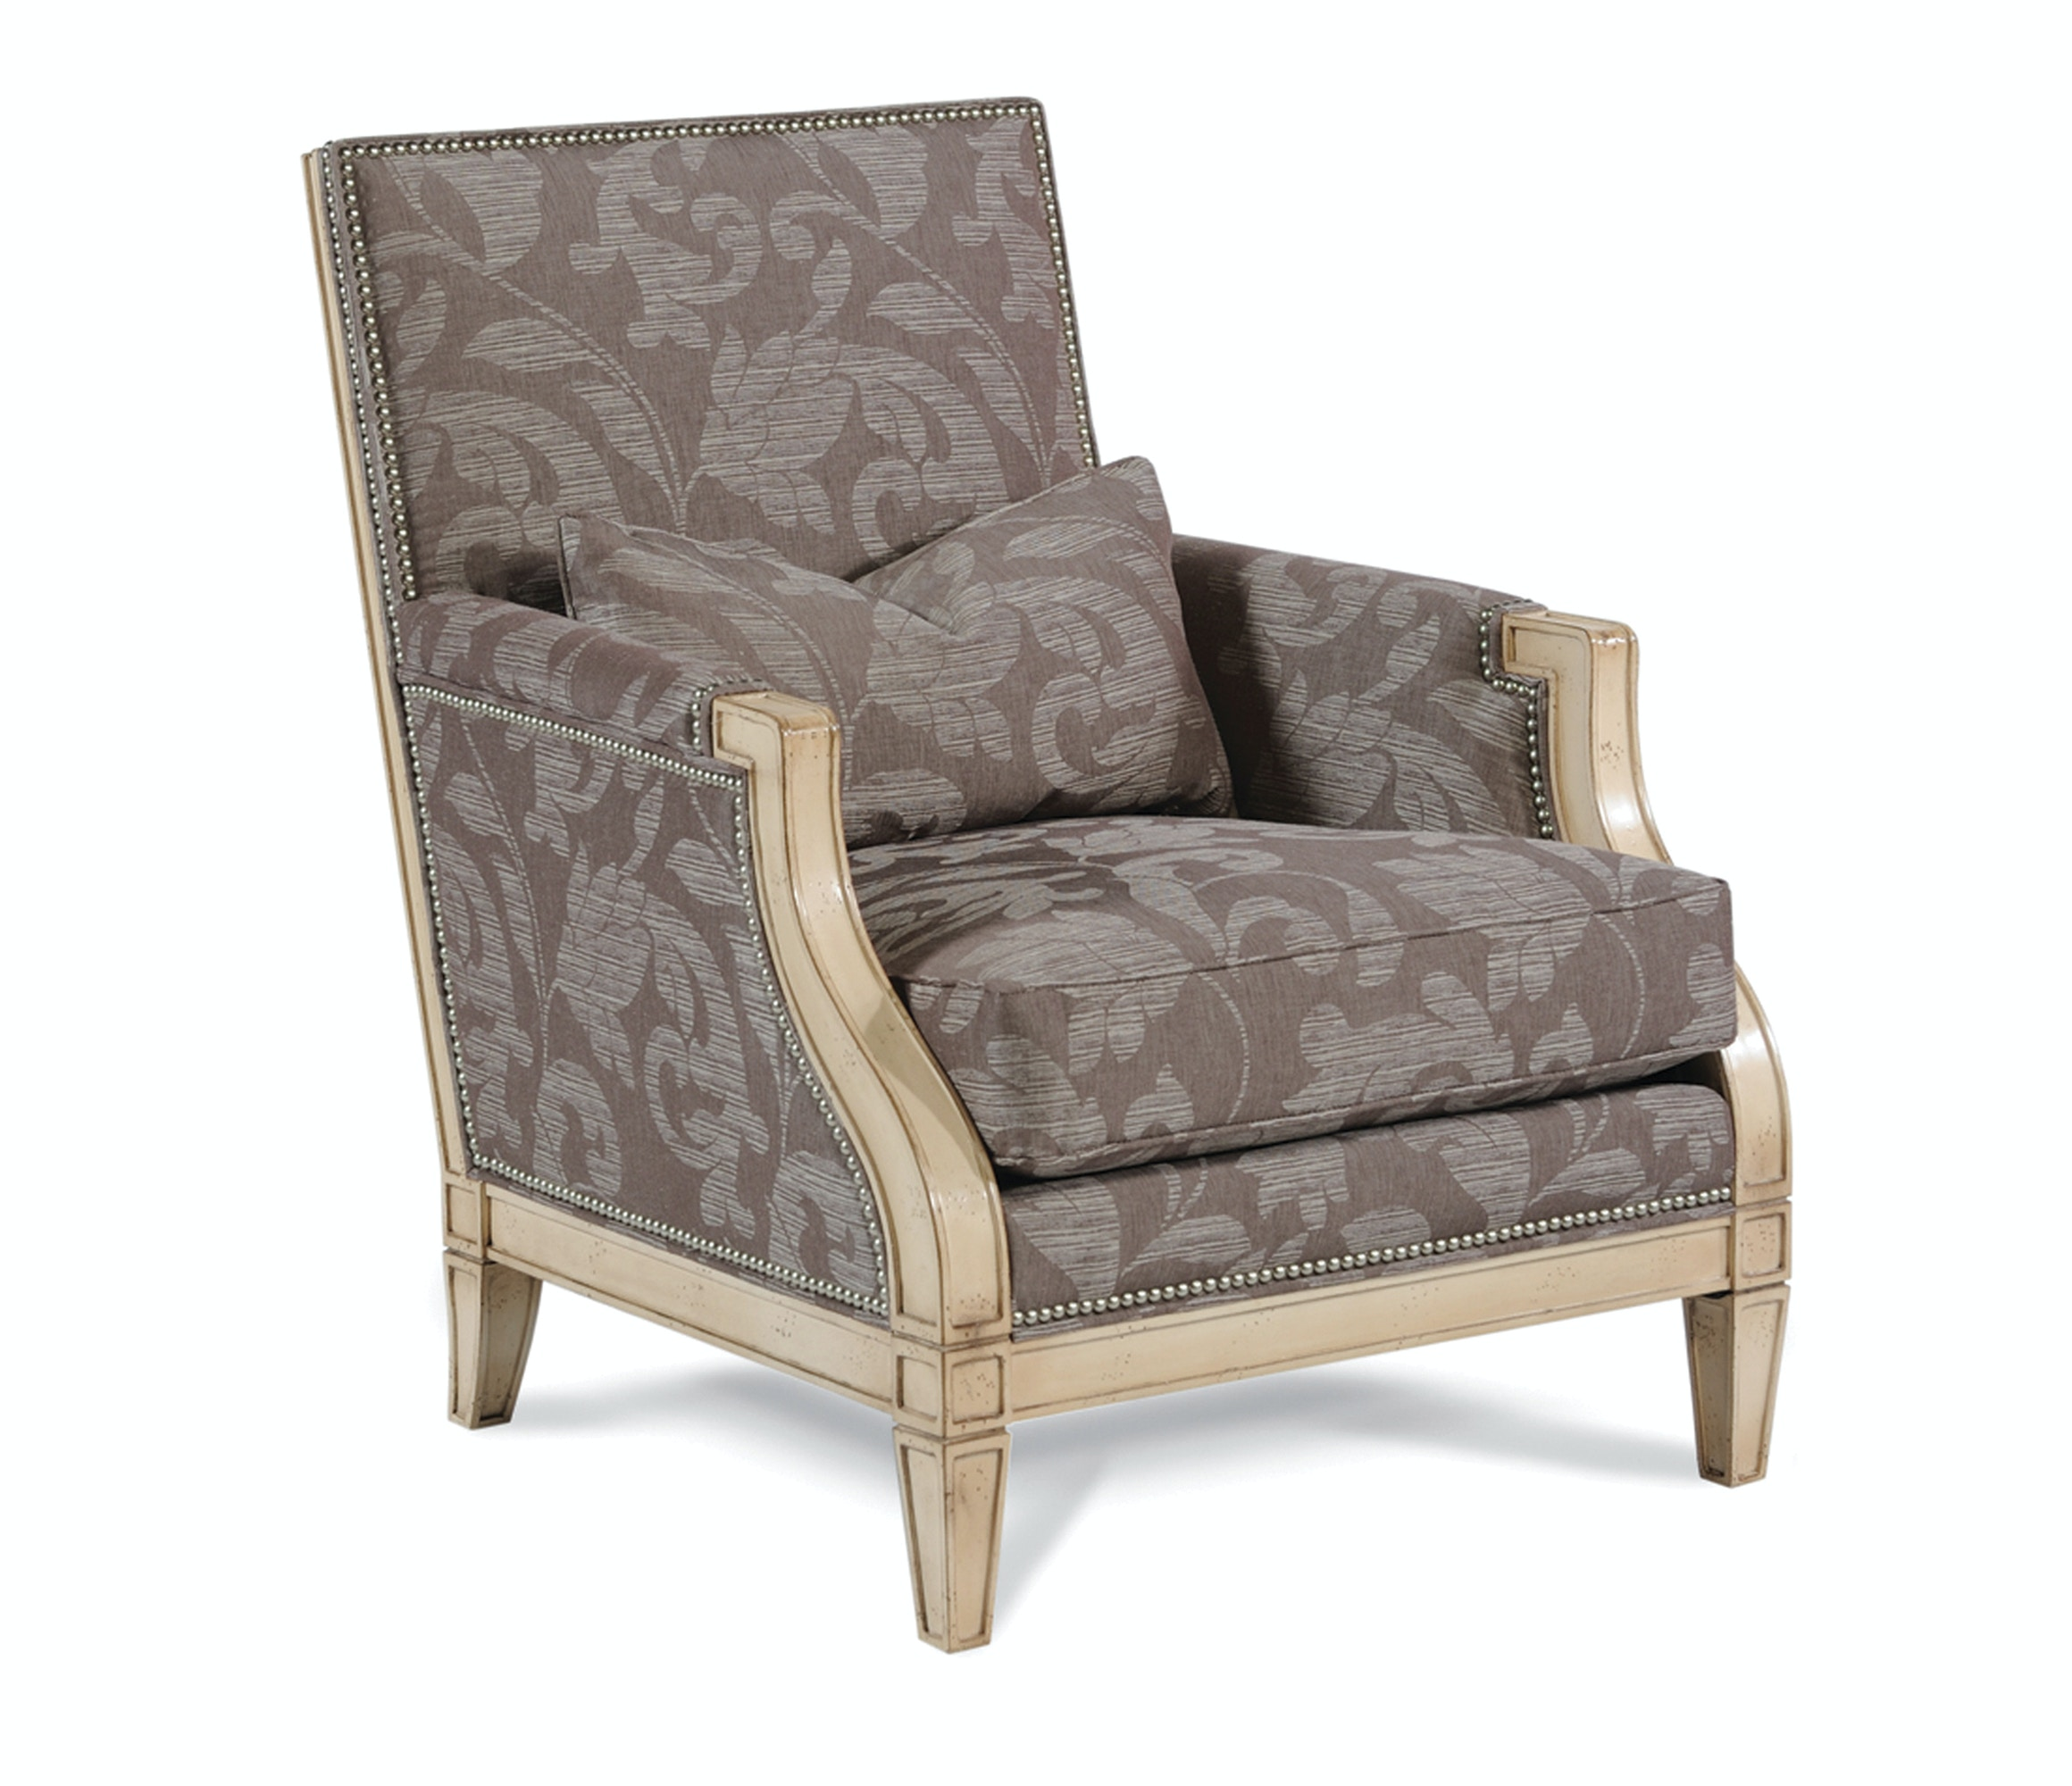 6511 01. Withington Chair